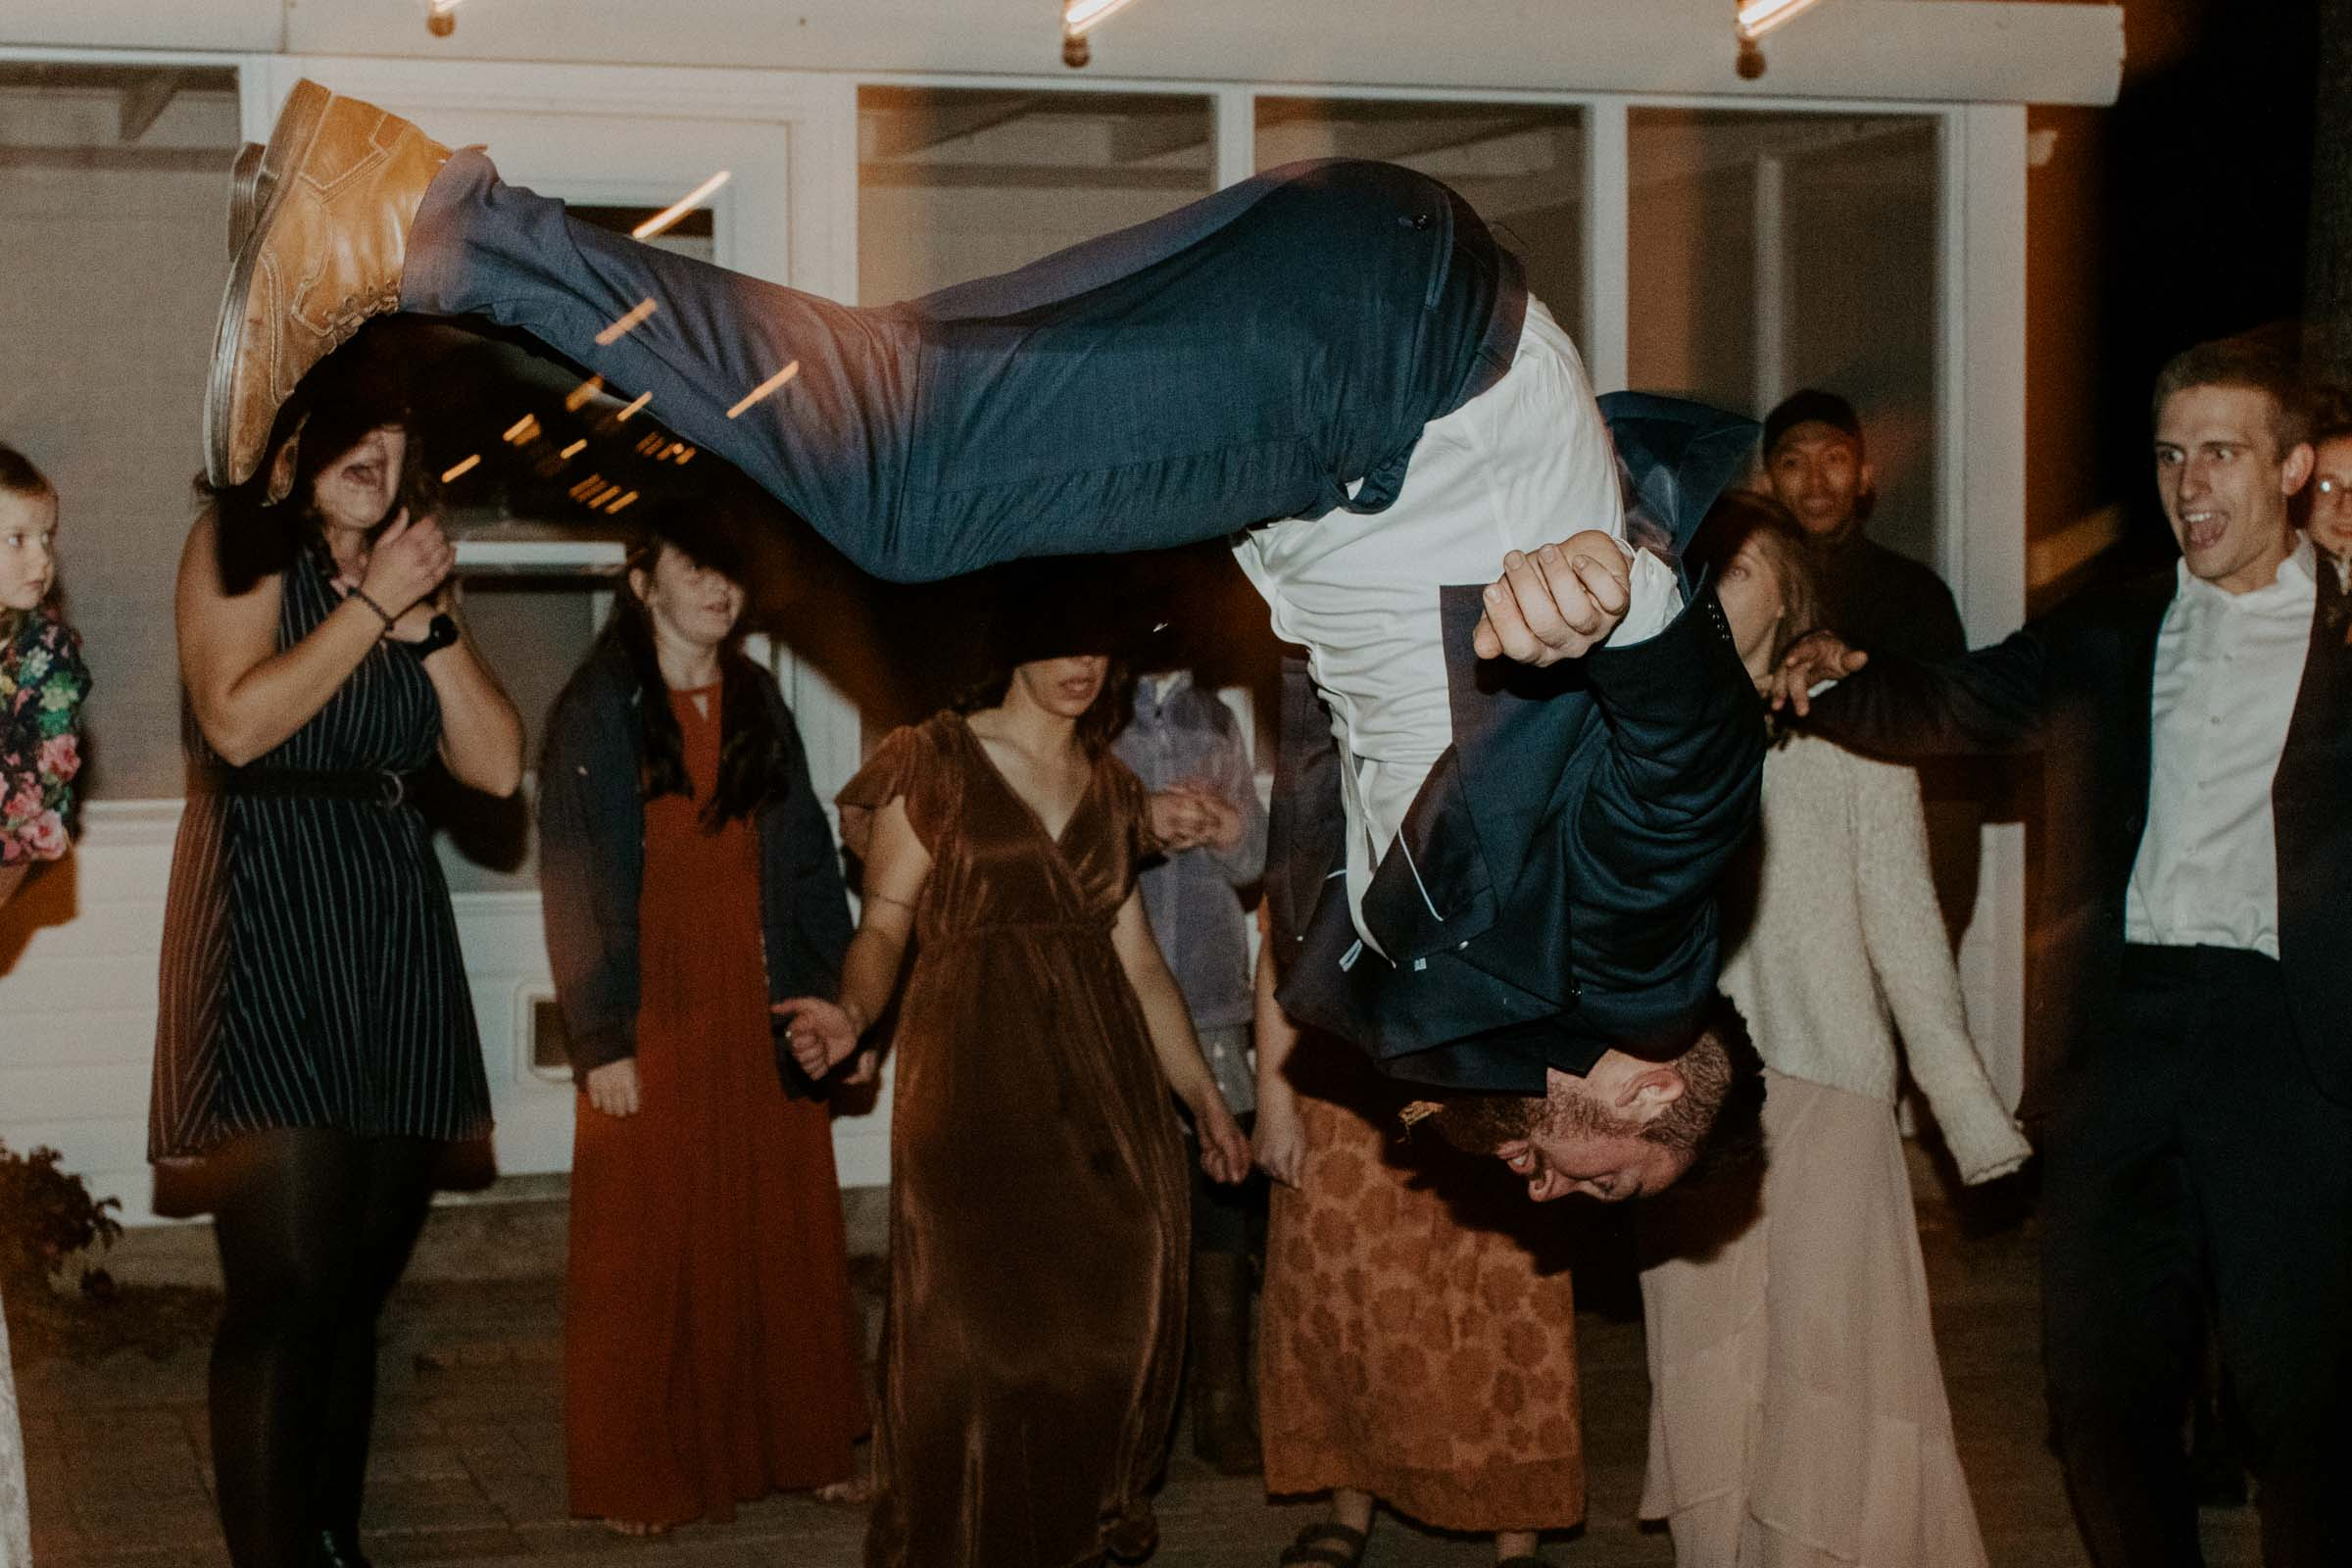 Groom doing backflip during his wedding reception